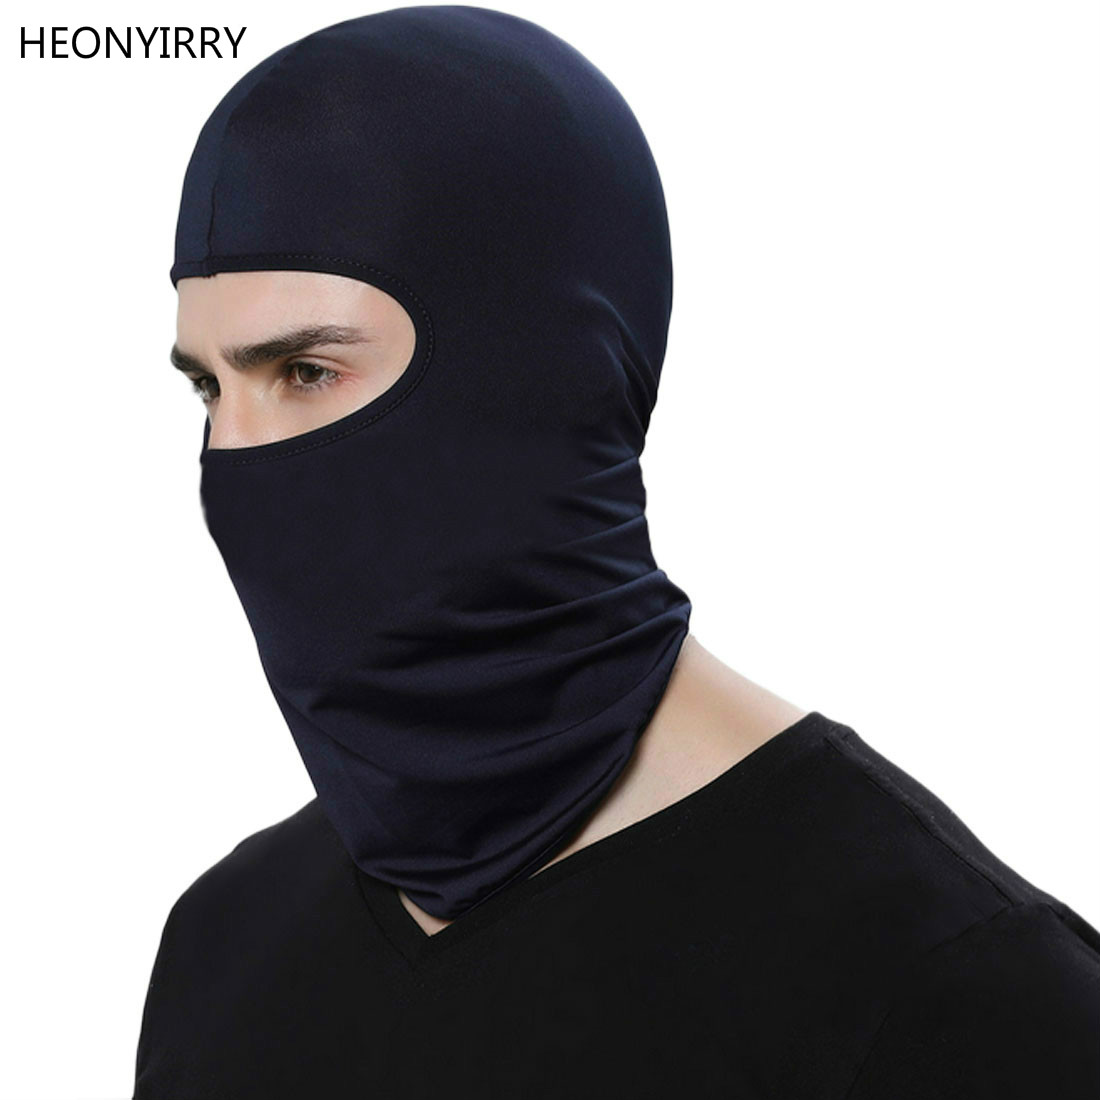 Hot Selling Motorcycle Face Mask Cycling Ski Neck Protecting Outdoor Balaclava Full Face Mask Ultra Thin Breathable Windproof(China)